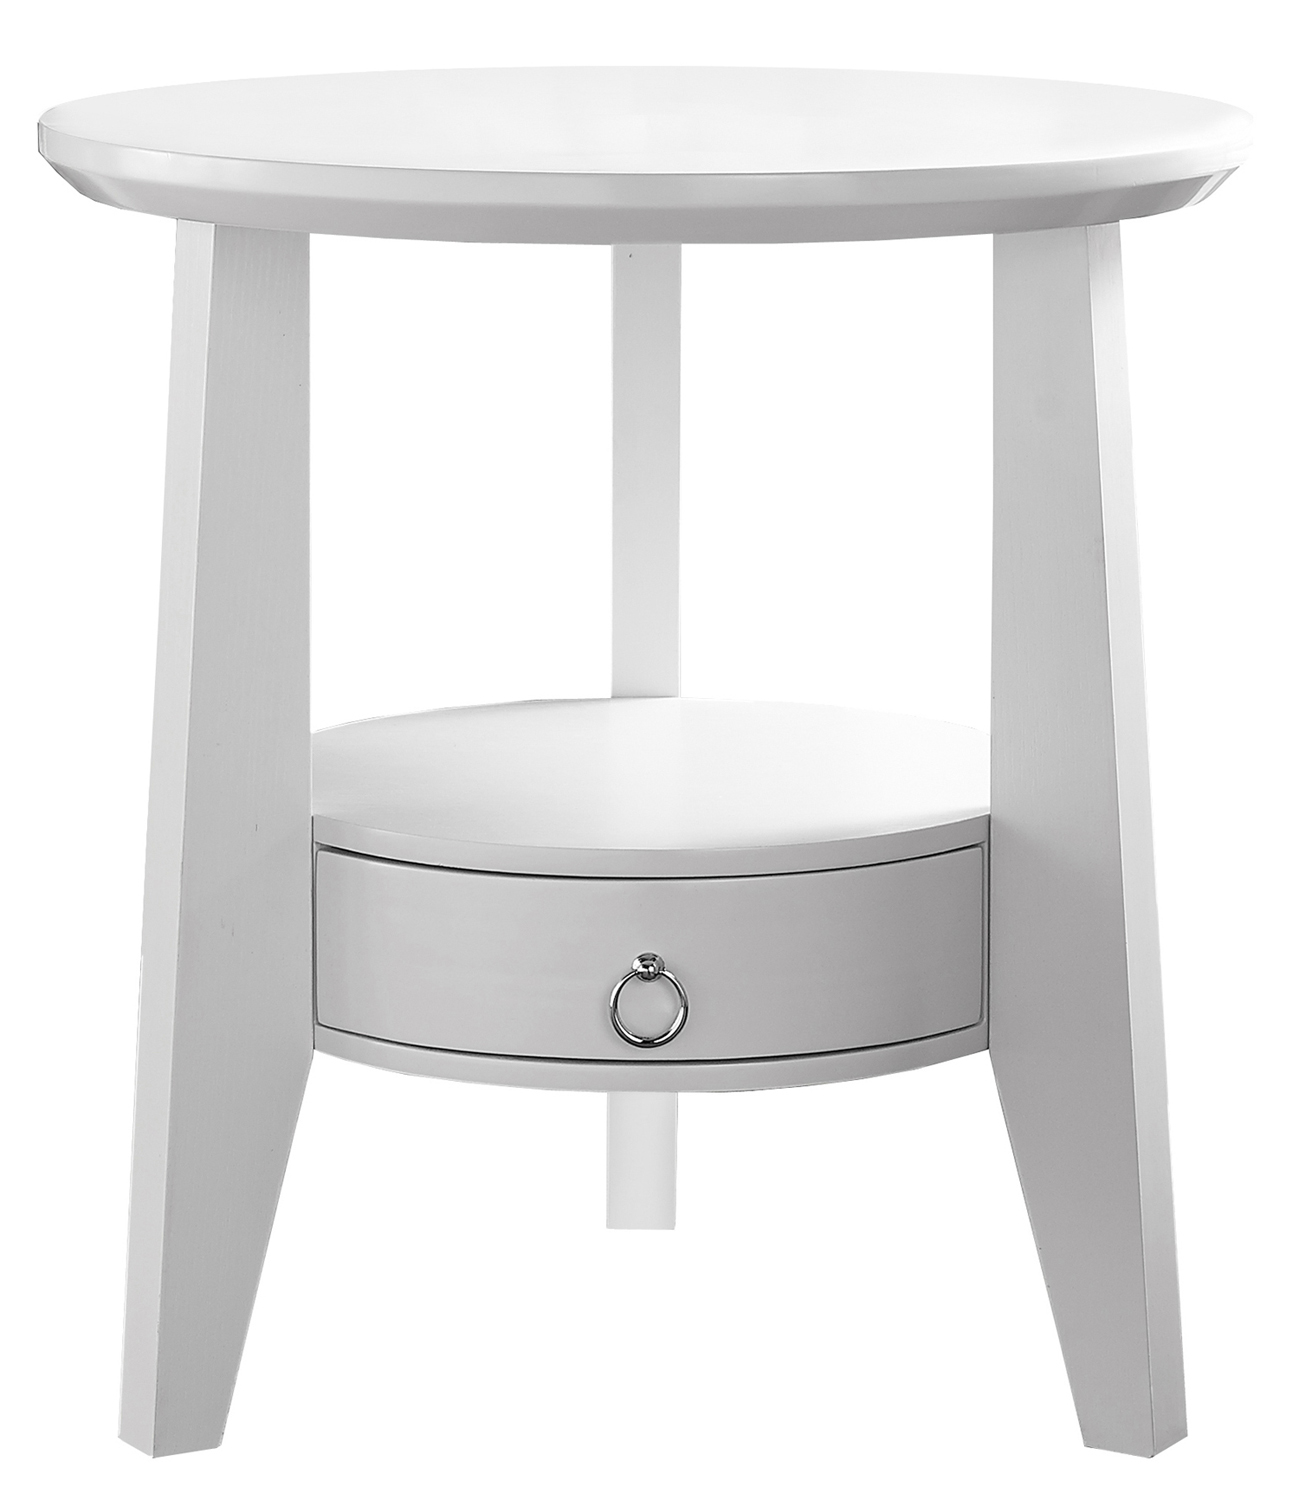 "23"" Accent Table With 1 Drawer, White"